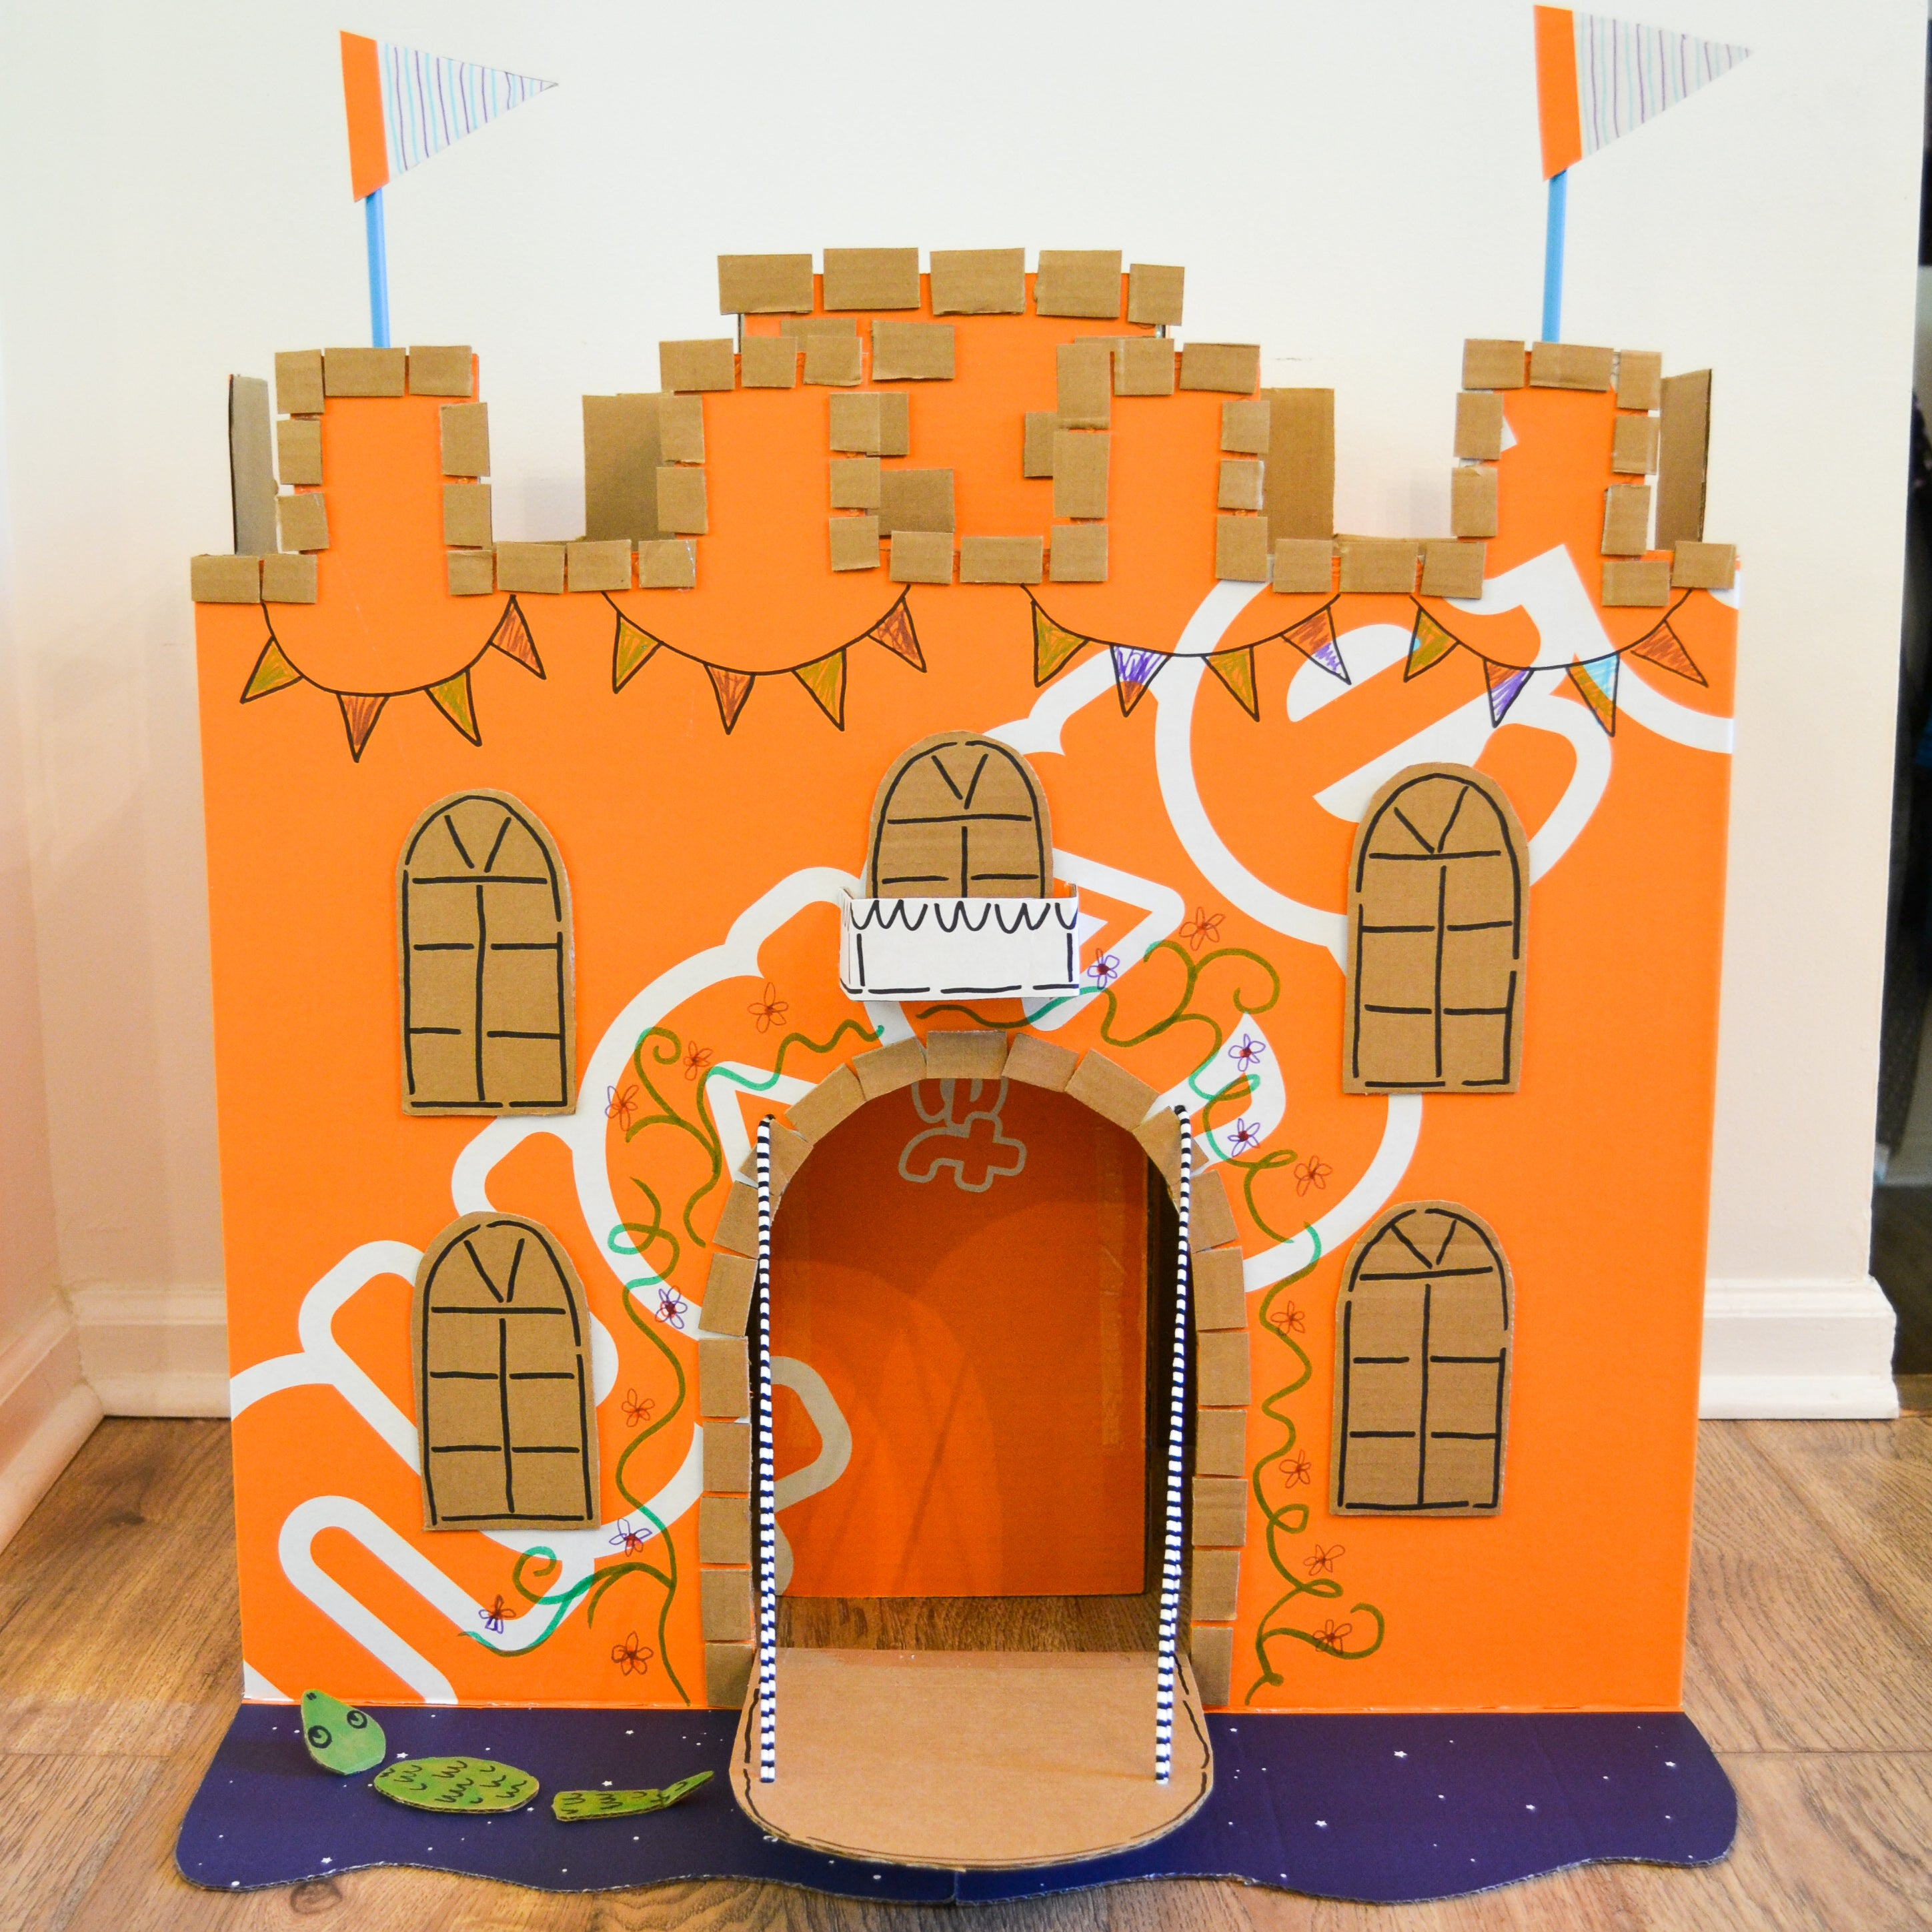 Cardboard castle made out of a Nugget Pillow Pack box